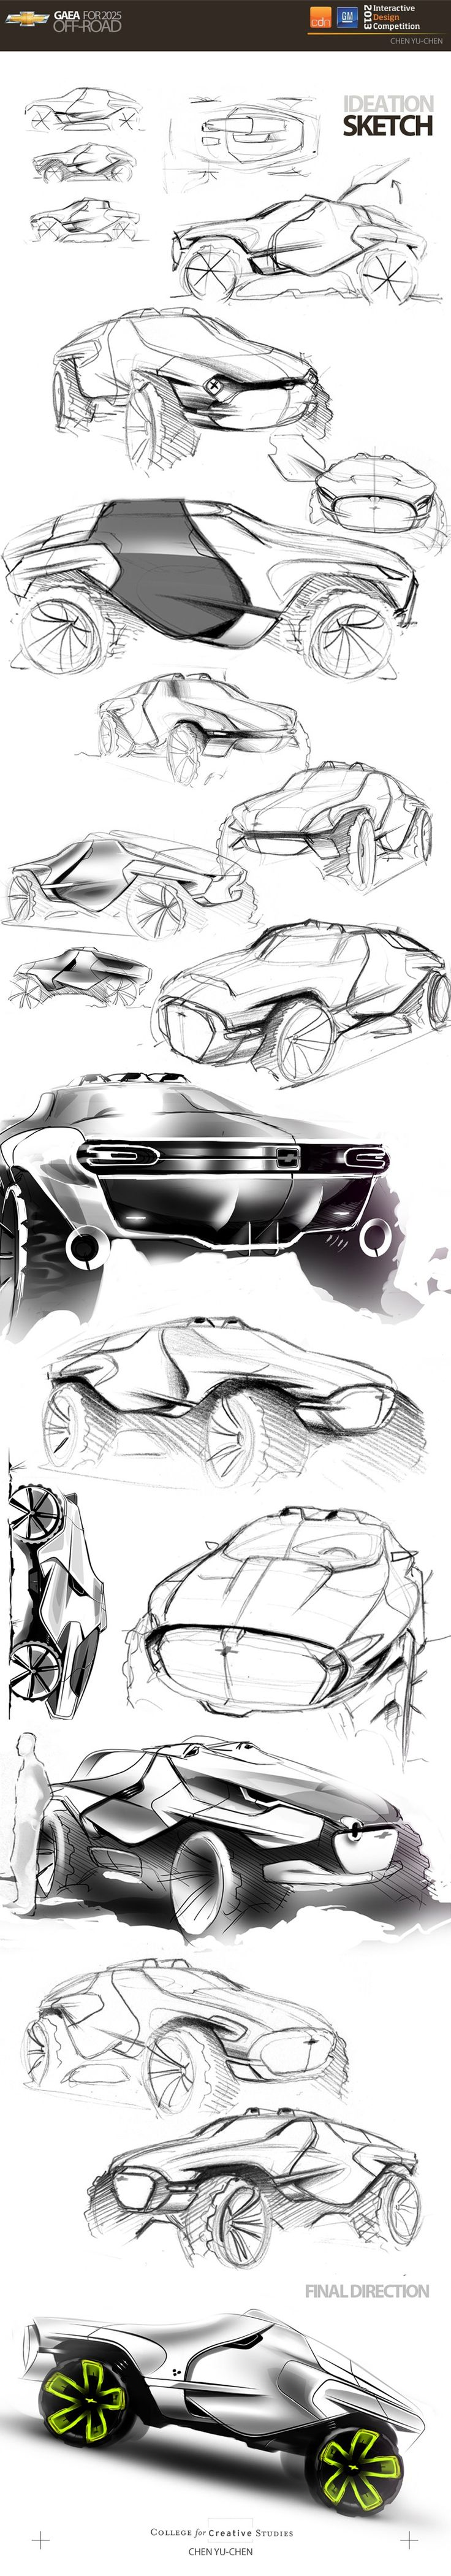 GAEA OFF-ROAD CONCEPT in Winners announced: CDN - GM Interactive Design Competition 2013-2014 - Phase II